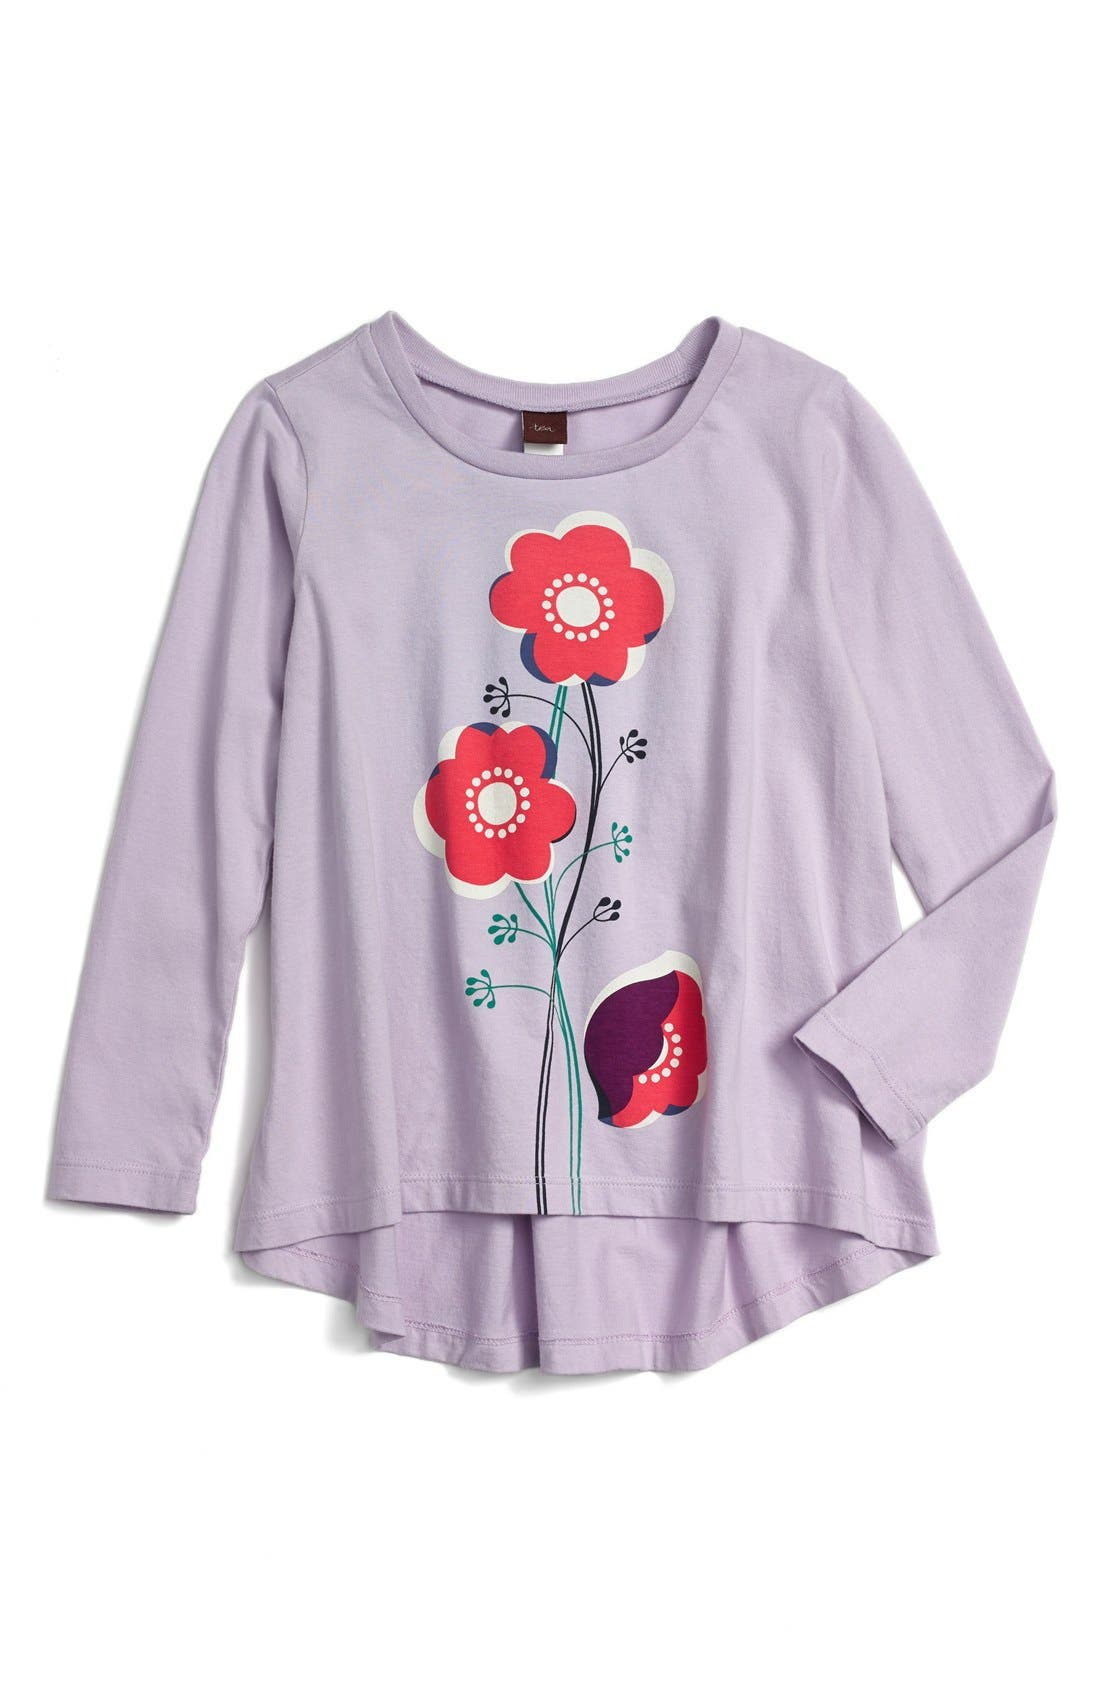 Main Image - Tea Collection 'Blumen Auf Stengel' High/Low Twirl Top (Baby Girls)